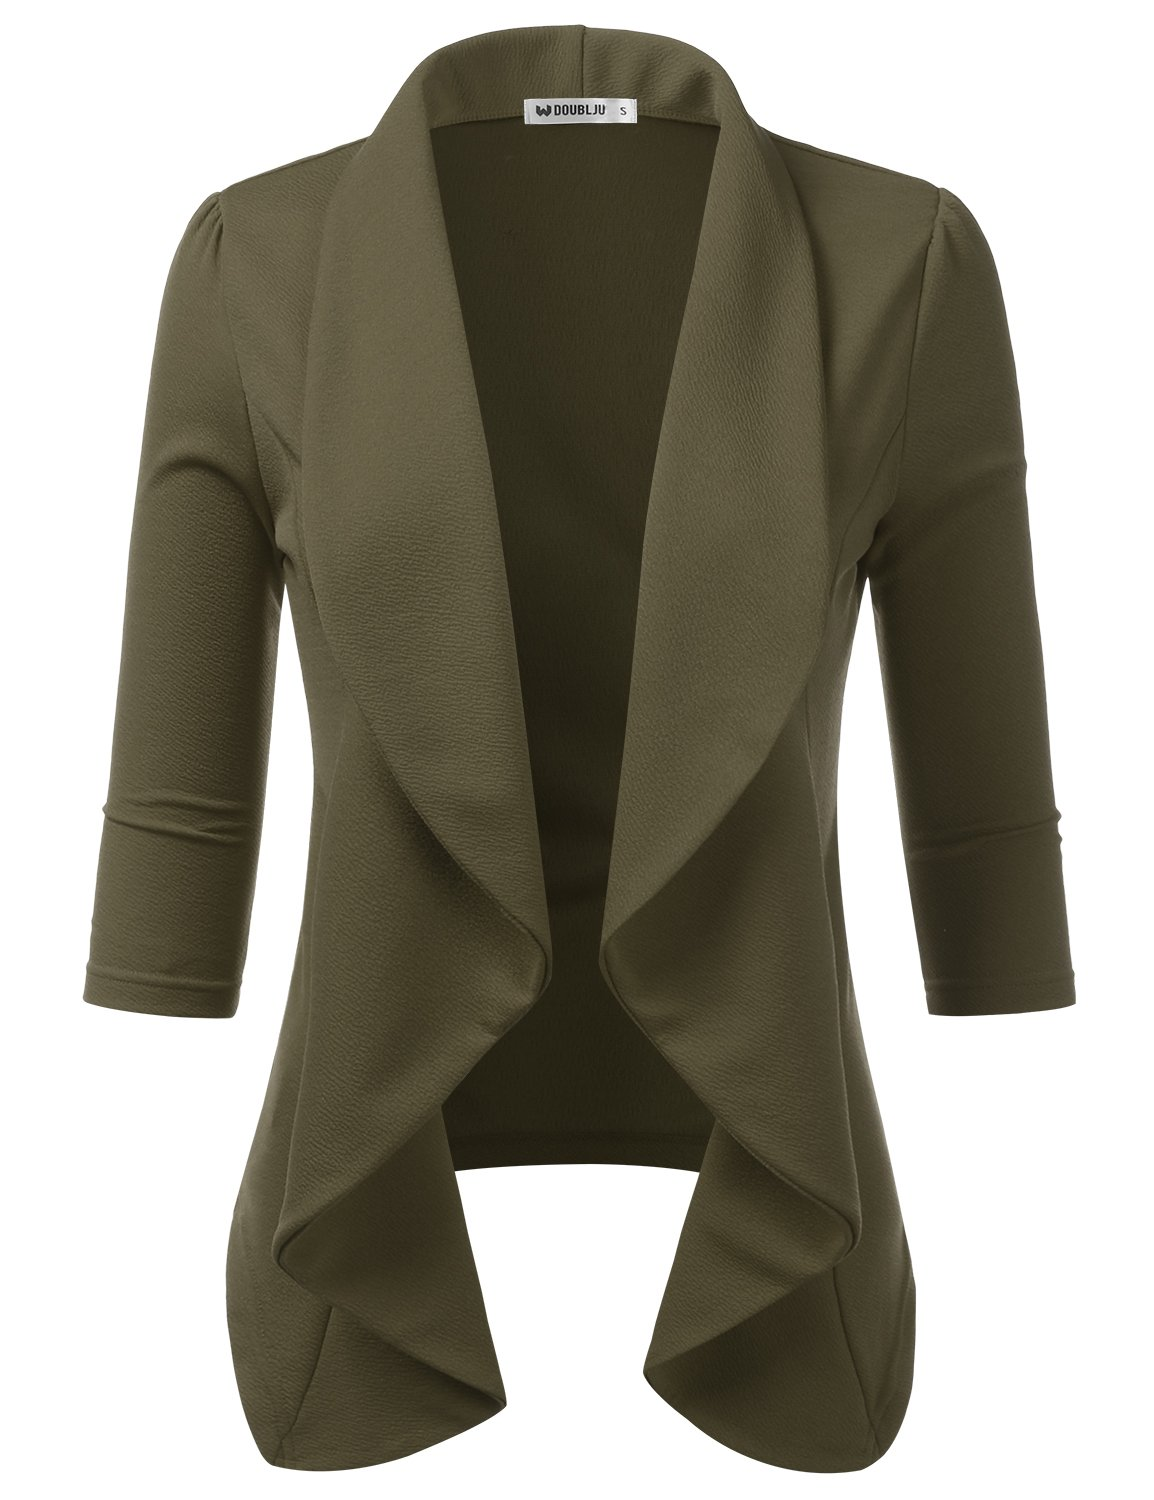 Doublju Womens Plain Simple Thin Lightweight 3/4 Sleeve Open Blazer Jacket with Plus Size Olive Large